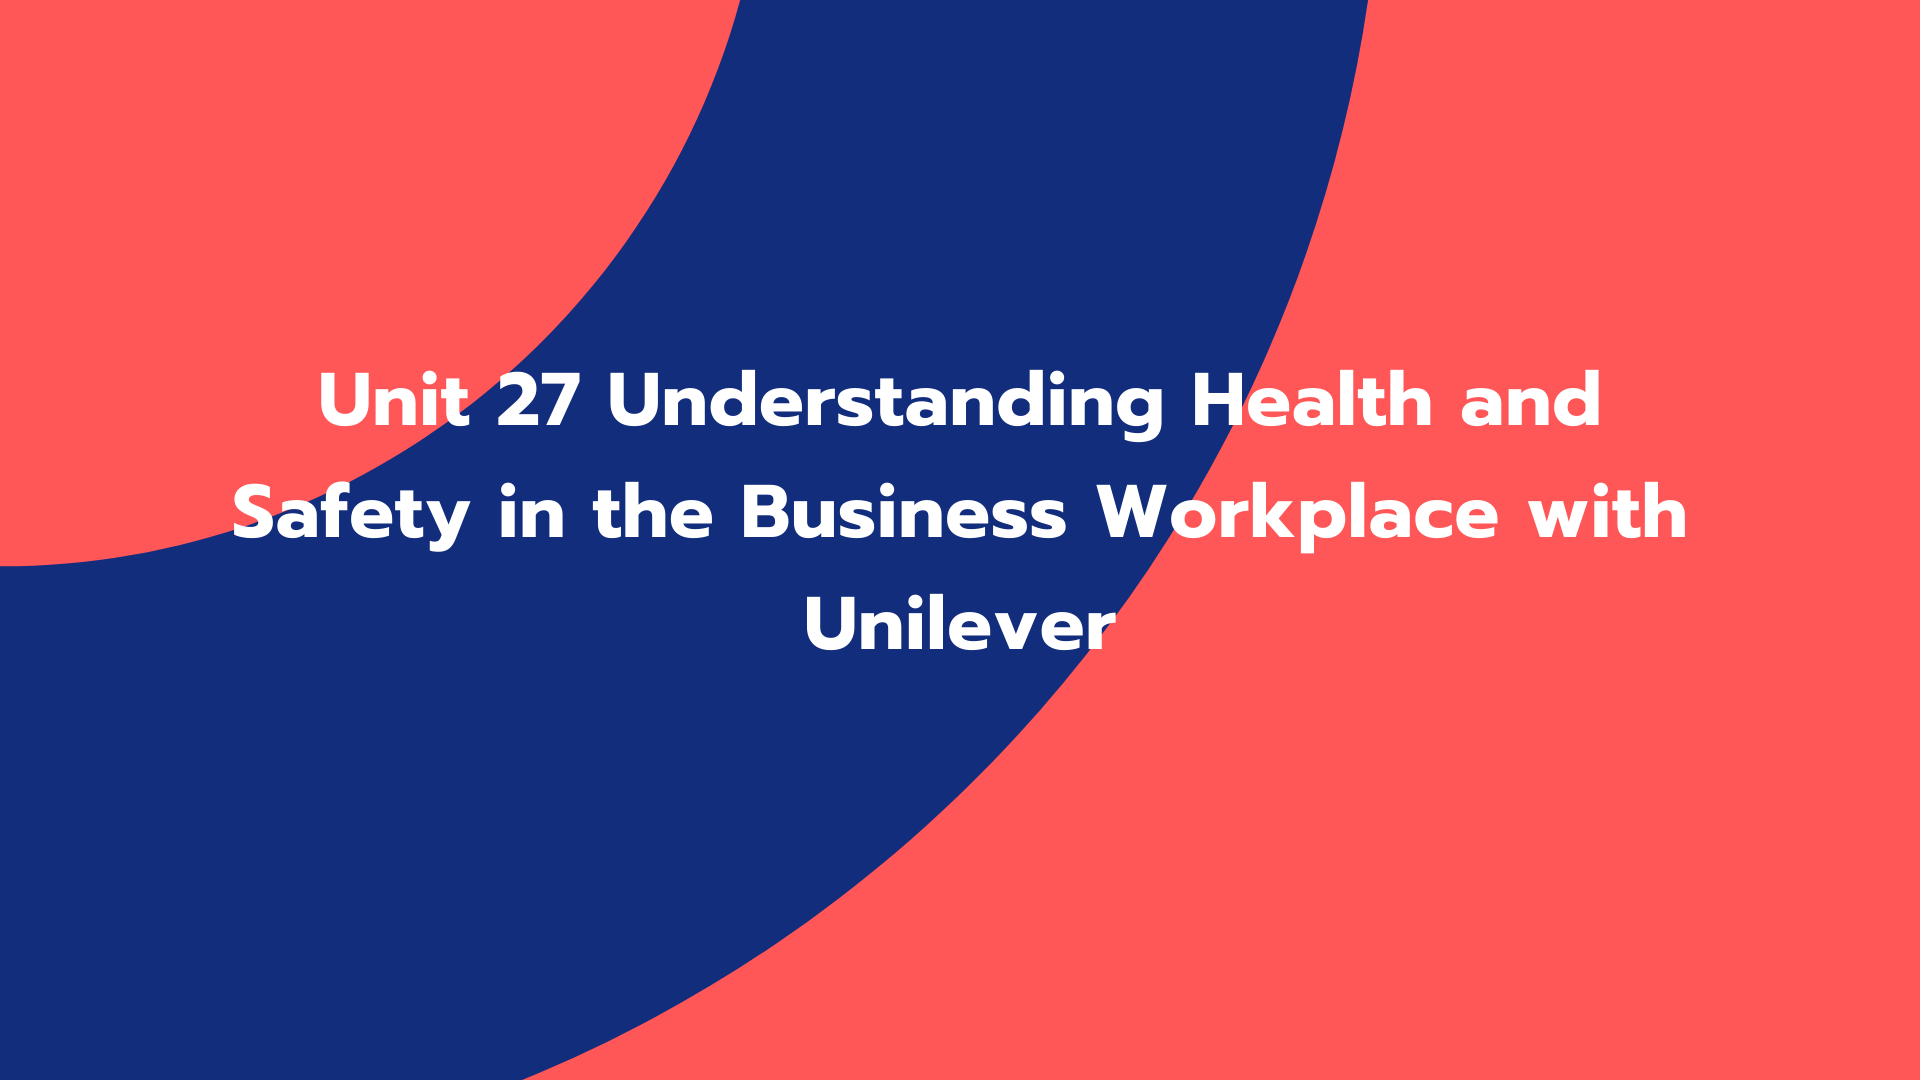 Unit 27 Understanding Health and Safety in the Business Workplace with Unilever